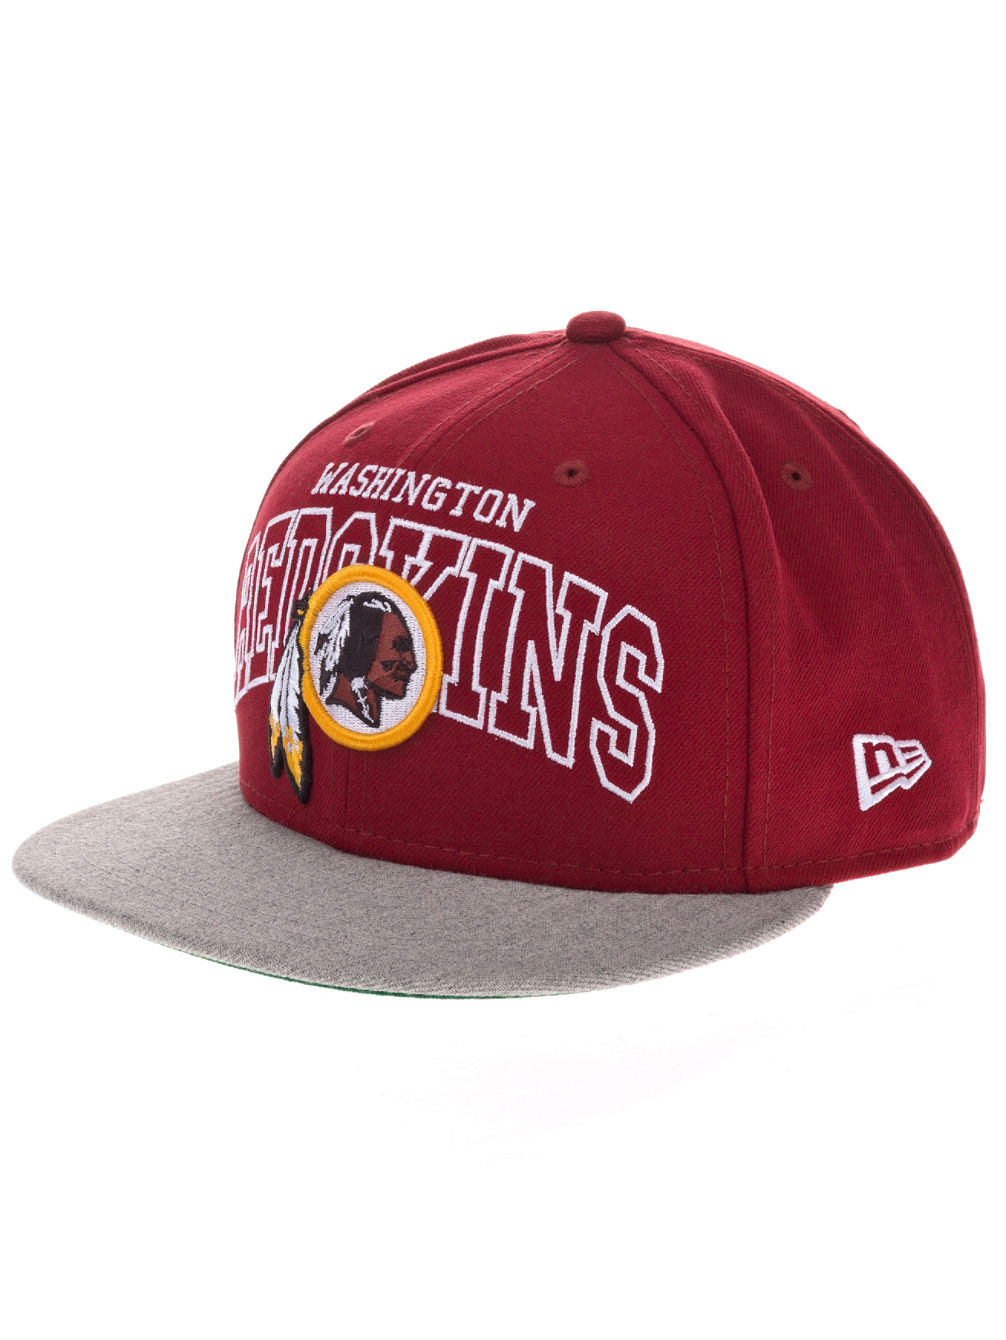 washington-redskins-wordmark-central-cap